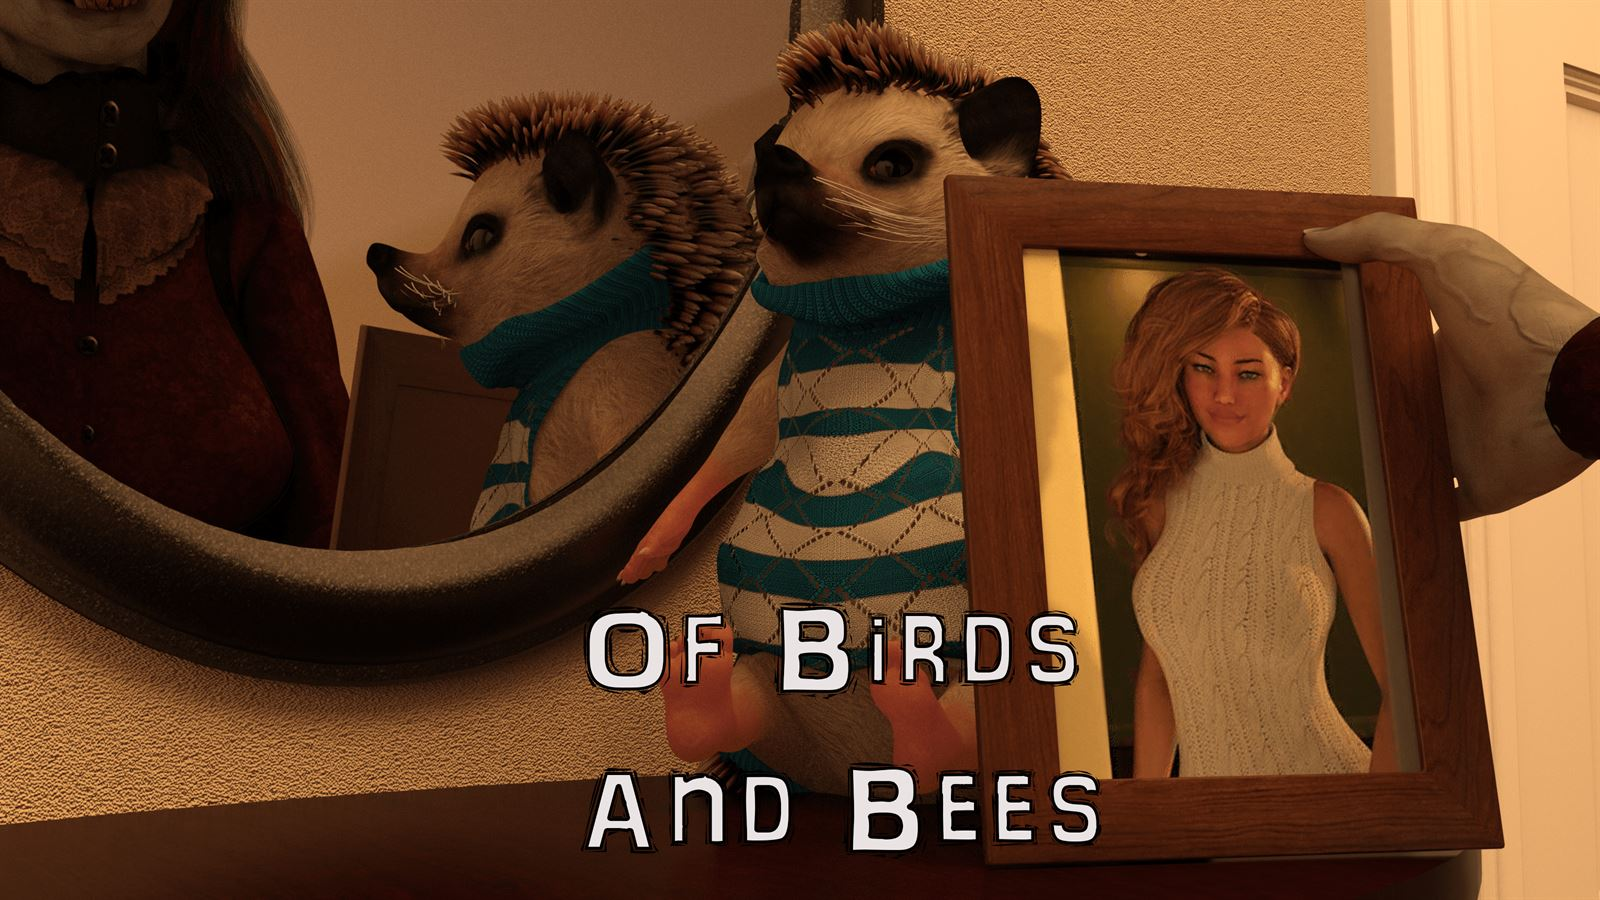 Of Birds and Bees Adult Game Cover